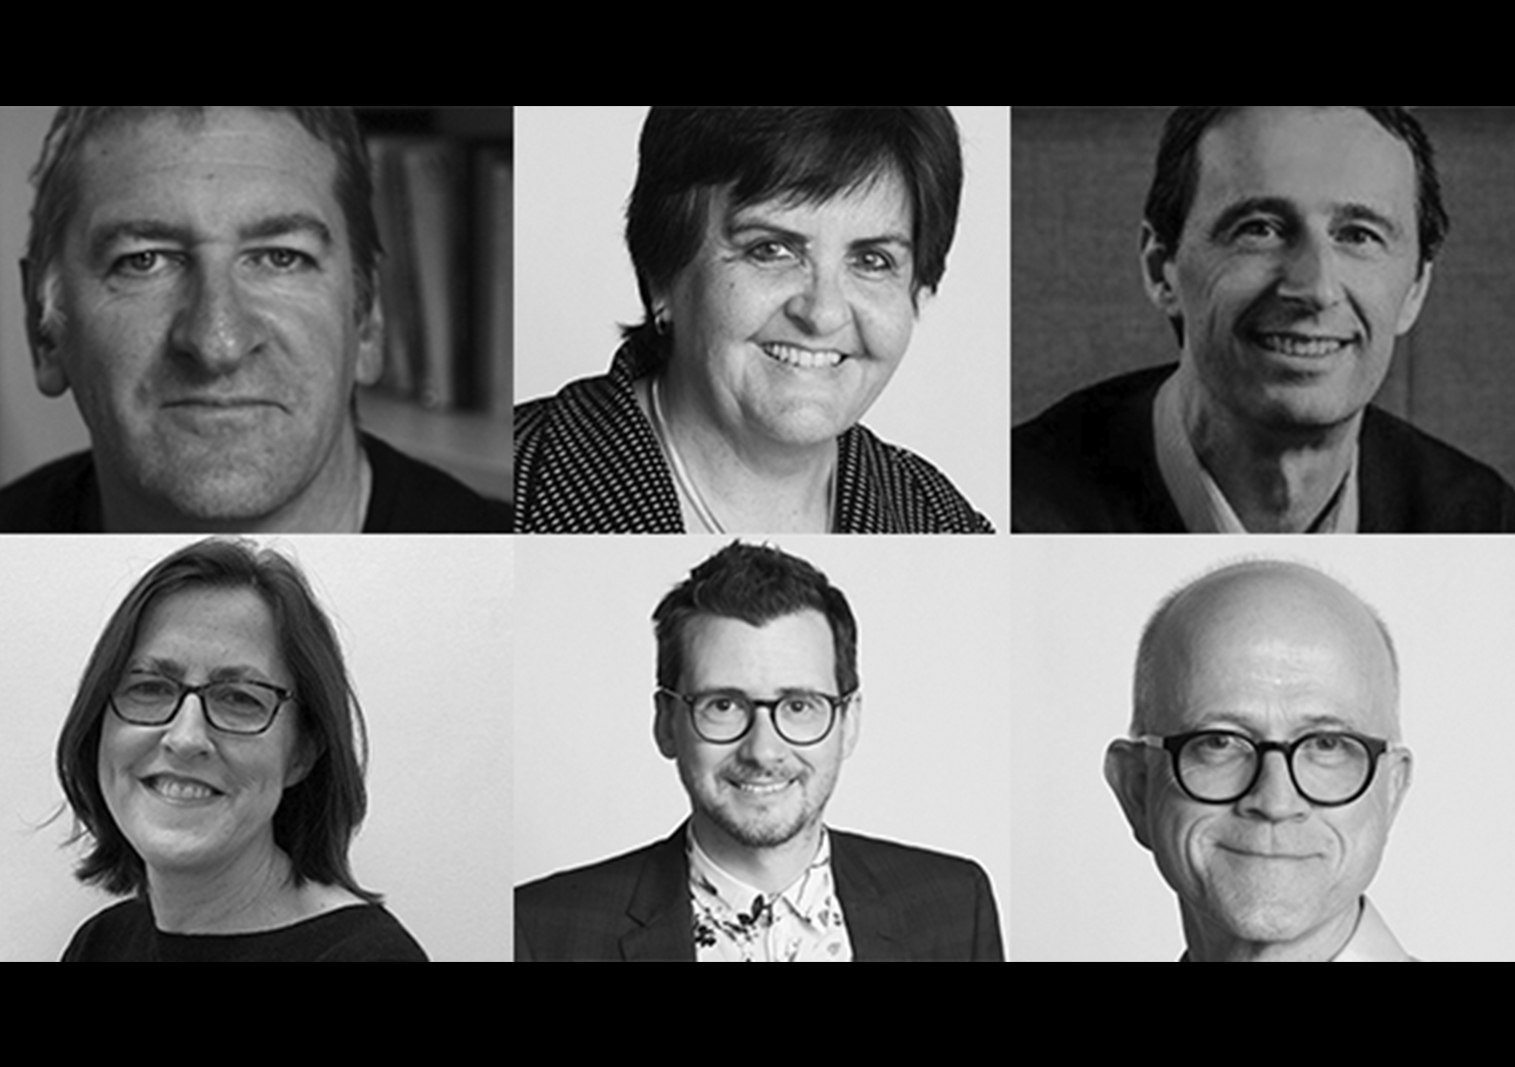 Inside your head - UNSW ADA Faculty heads